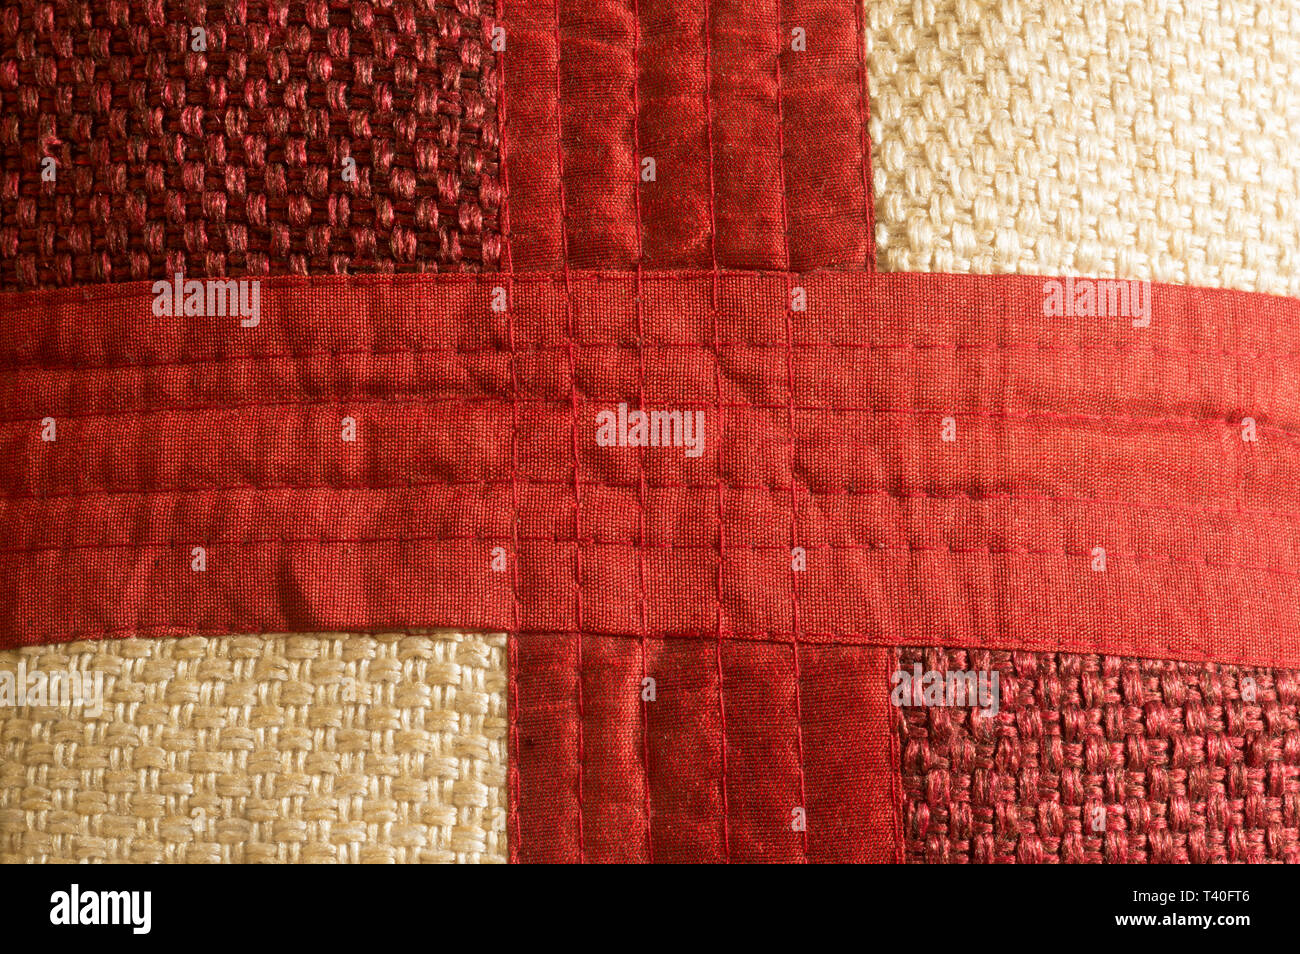 Close up Abstract of silk or satin fabric background of linen cloth textile of red fabric with crisscross diagonal pattern for any occasion. Natural c - Stock Image